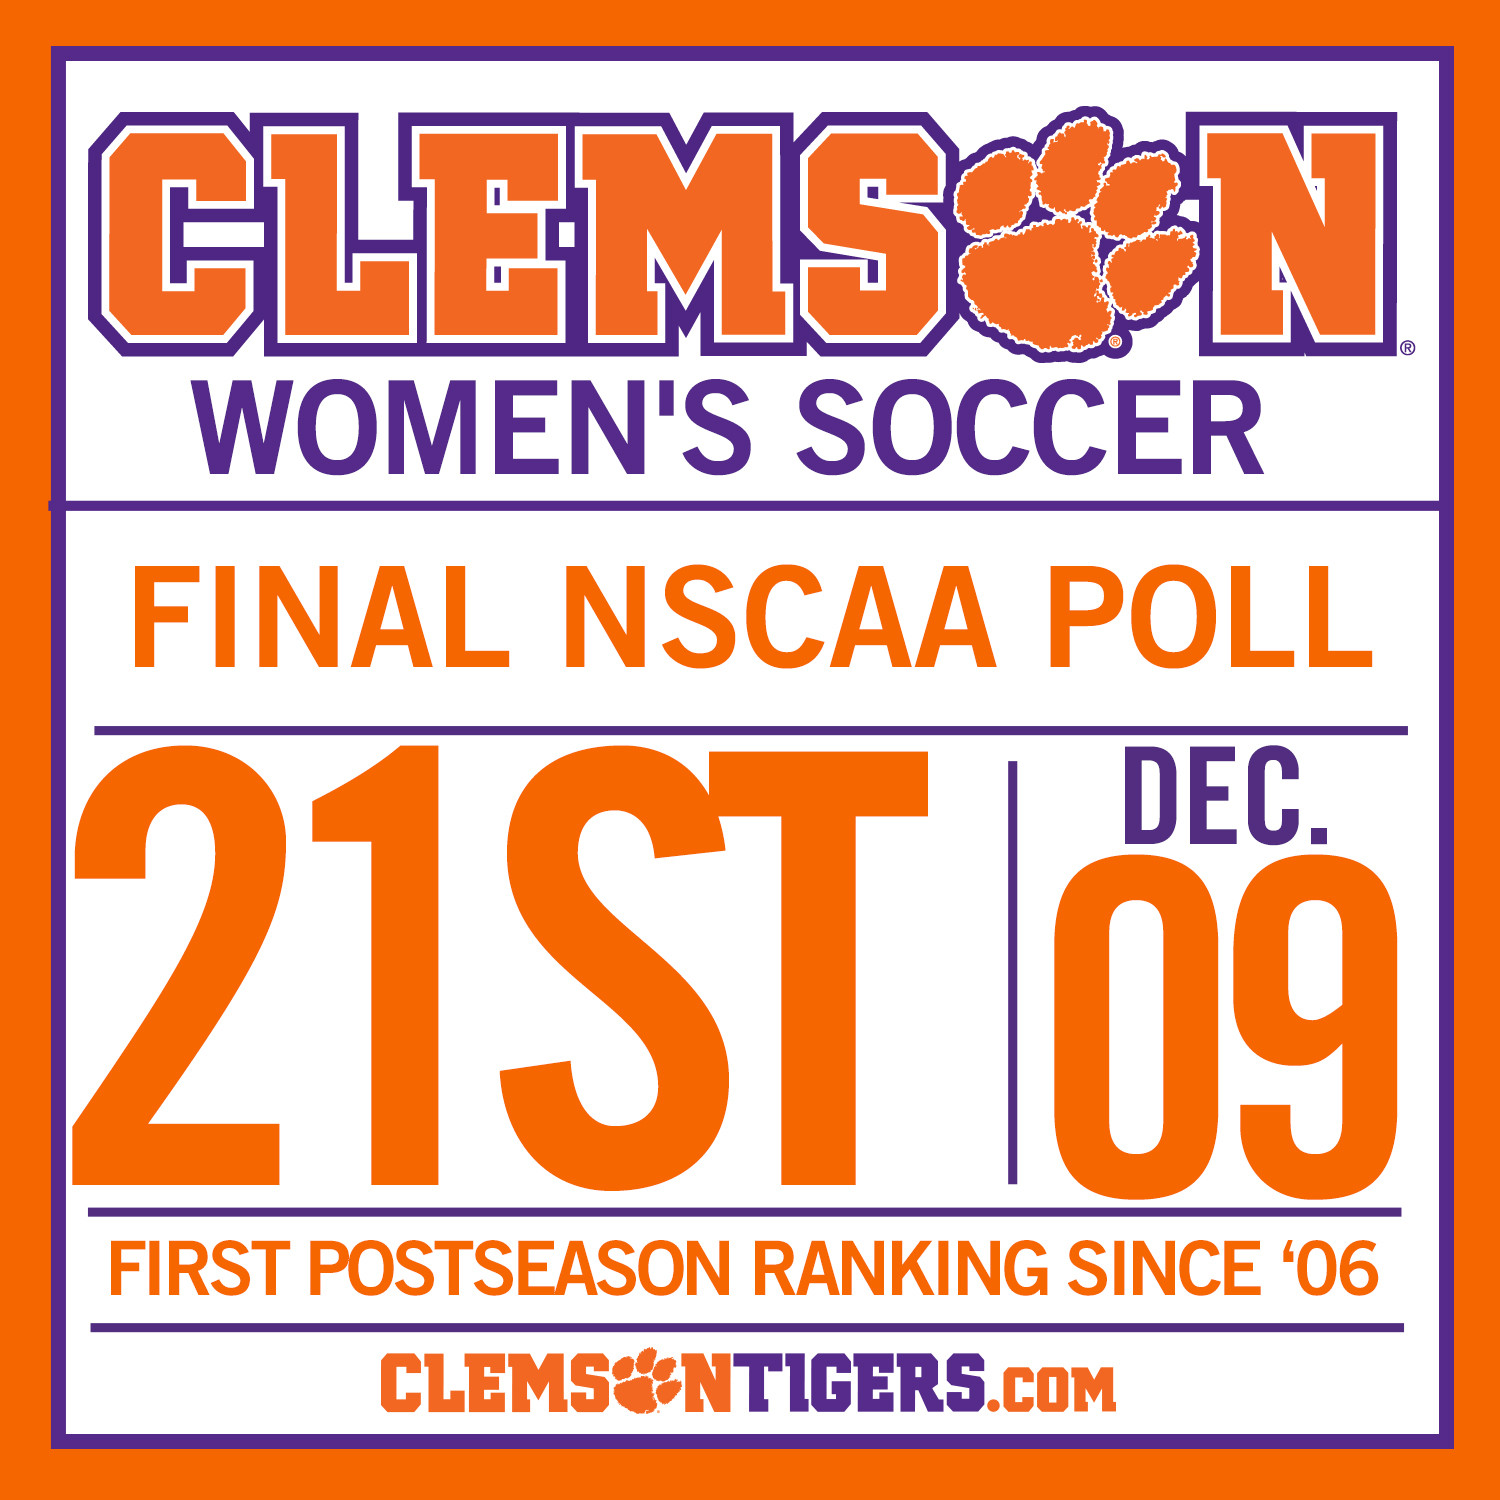 Tigers Ranked 21st in Final NSCAA Poll